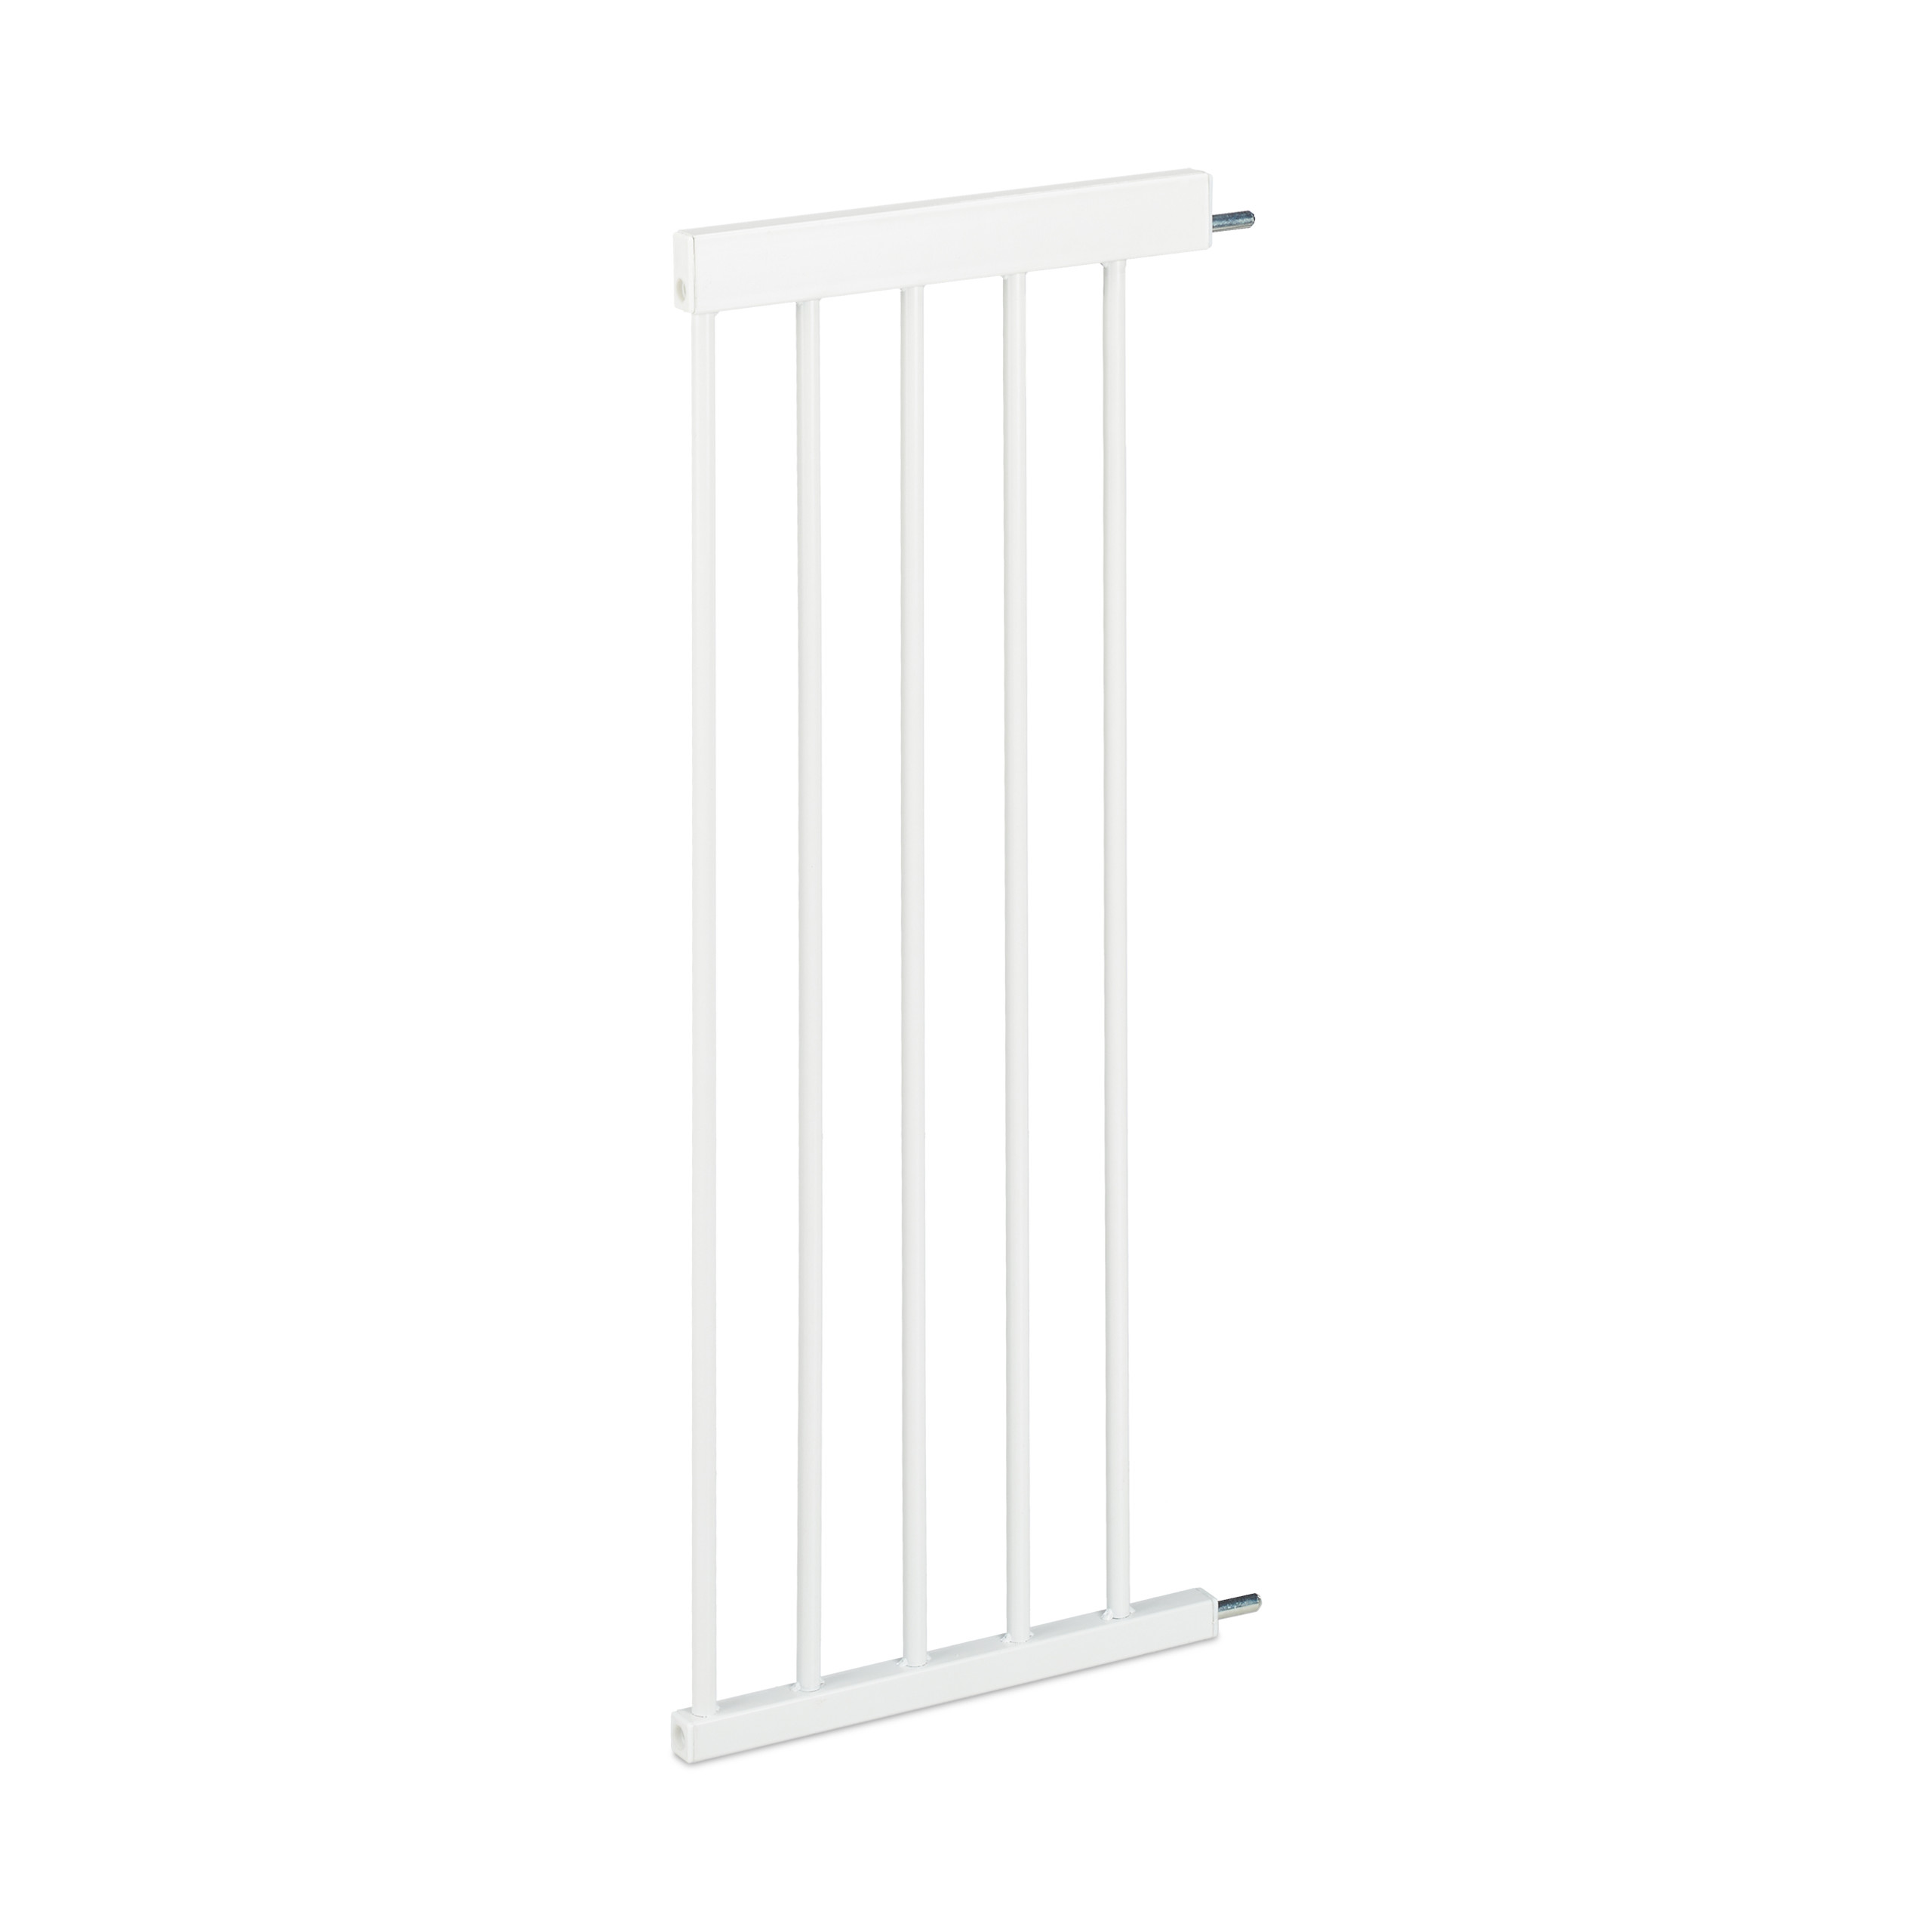 Pressure-Fit-Baby-Safety-Gate-Extension-Security-Barrier-for-Stairs-and-Doors thumbnail 24